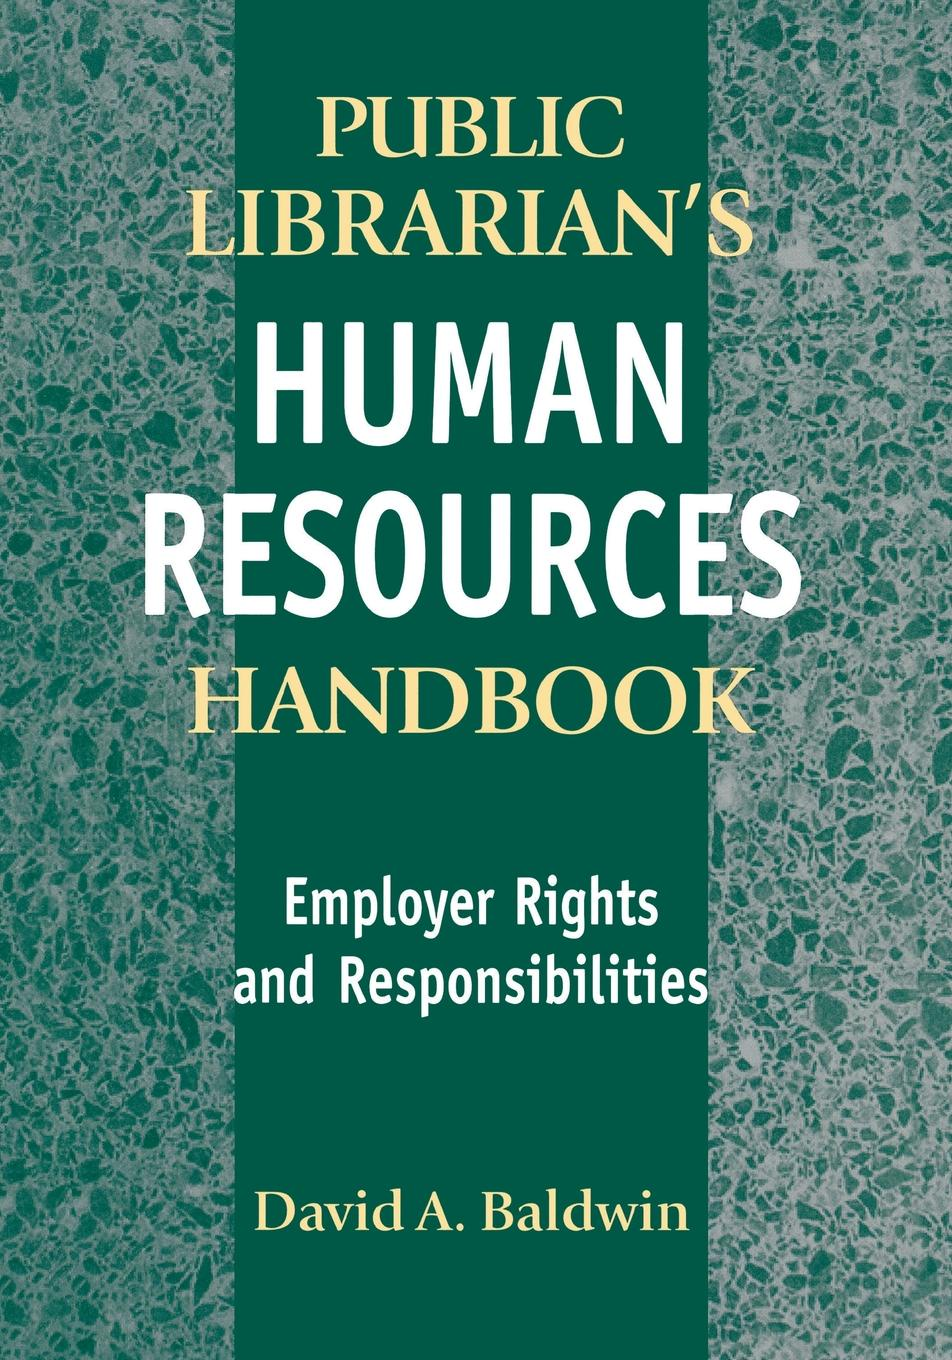 David Baldwin The Public Librarian's Human Resources Handbook. Employer Rights and Responsibilities niamh reilly women s human rights